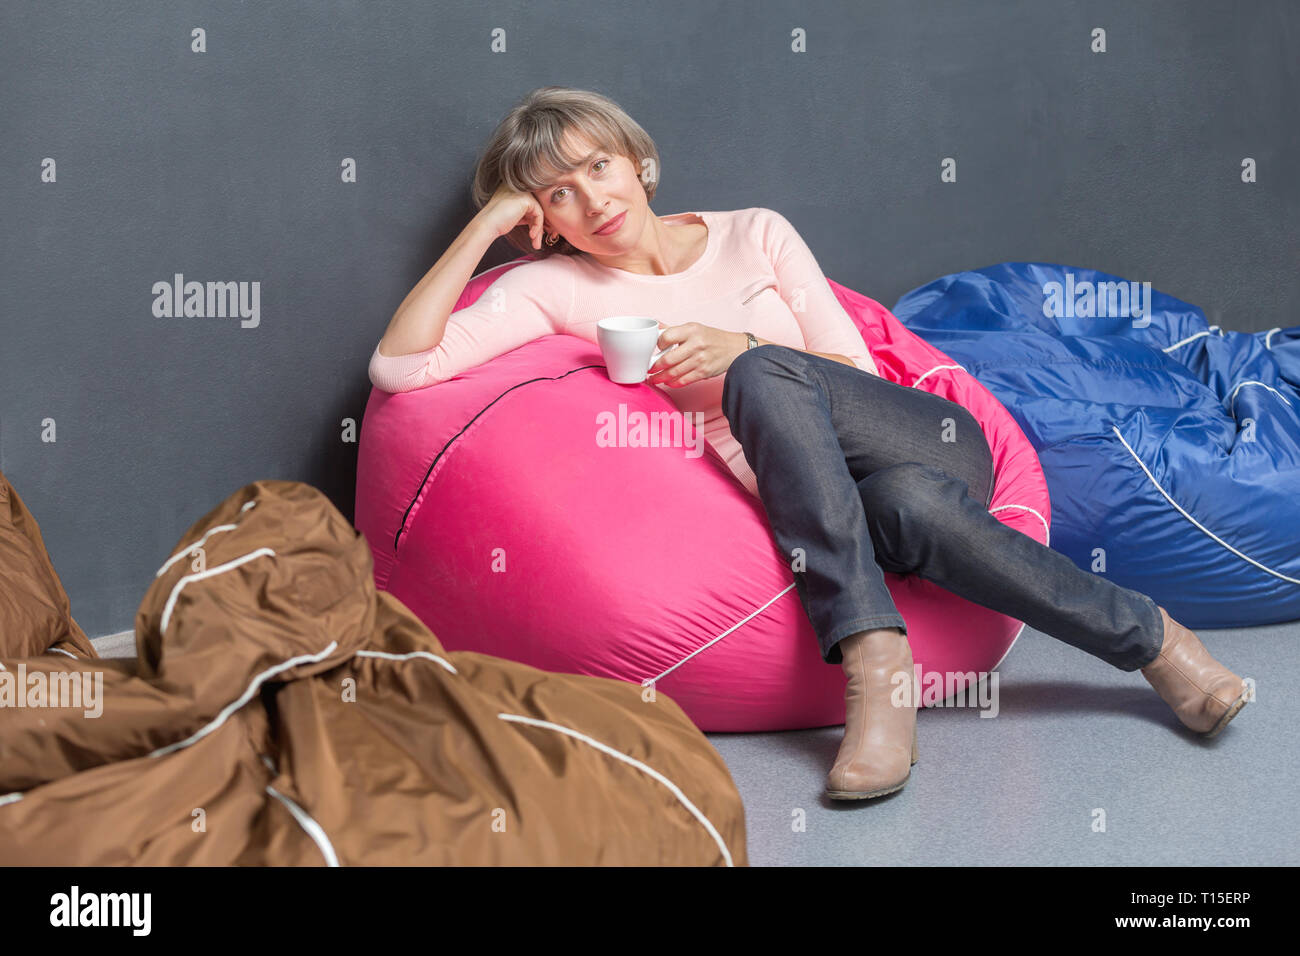 Portrait of woman relaxing with cup of coffee on bean bag in the office - Stock Image